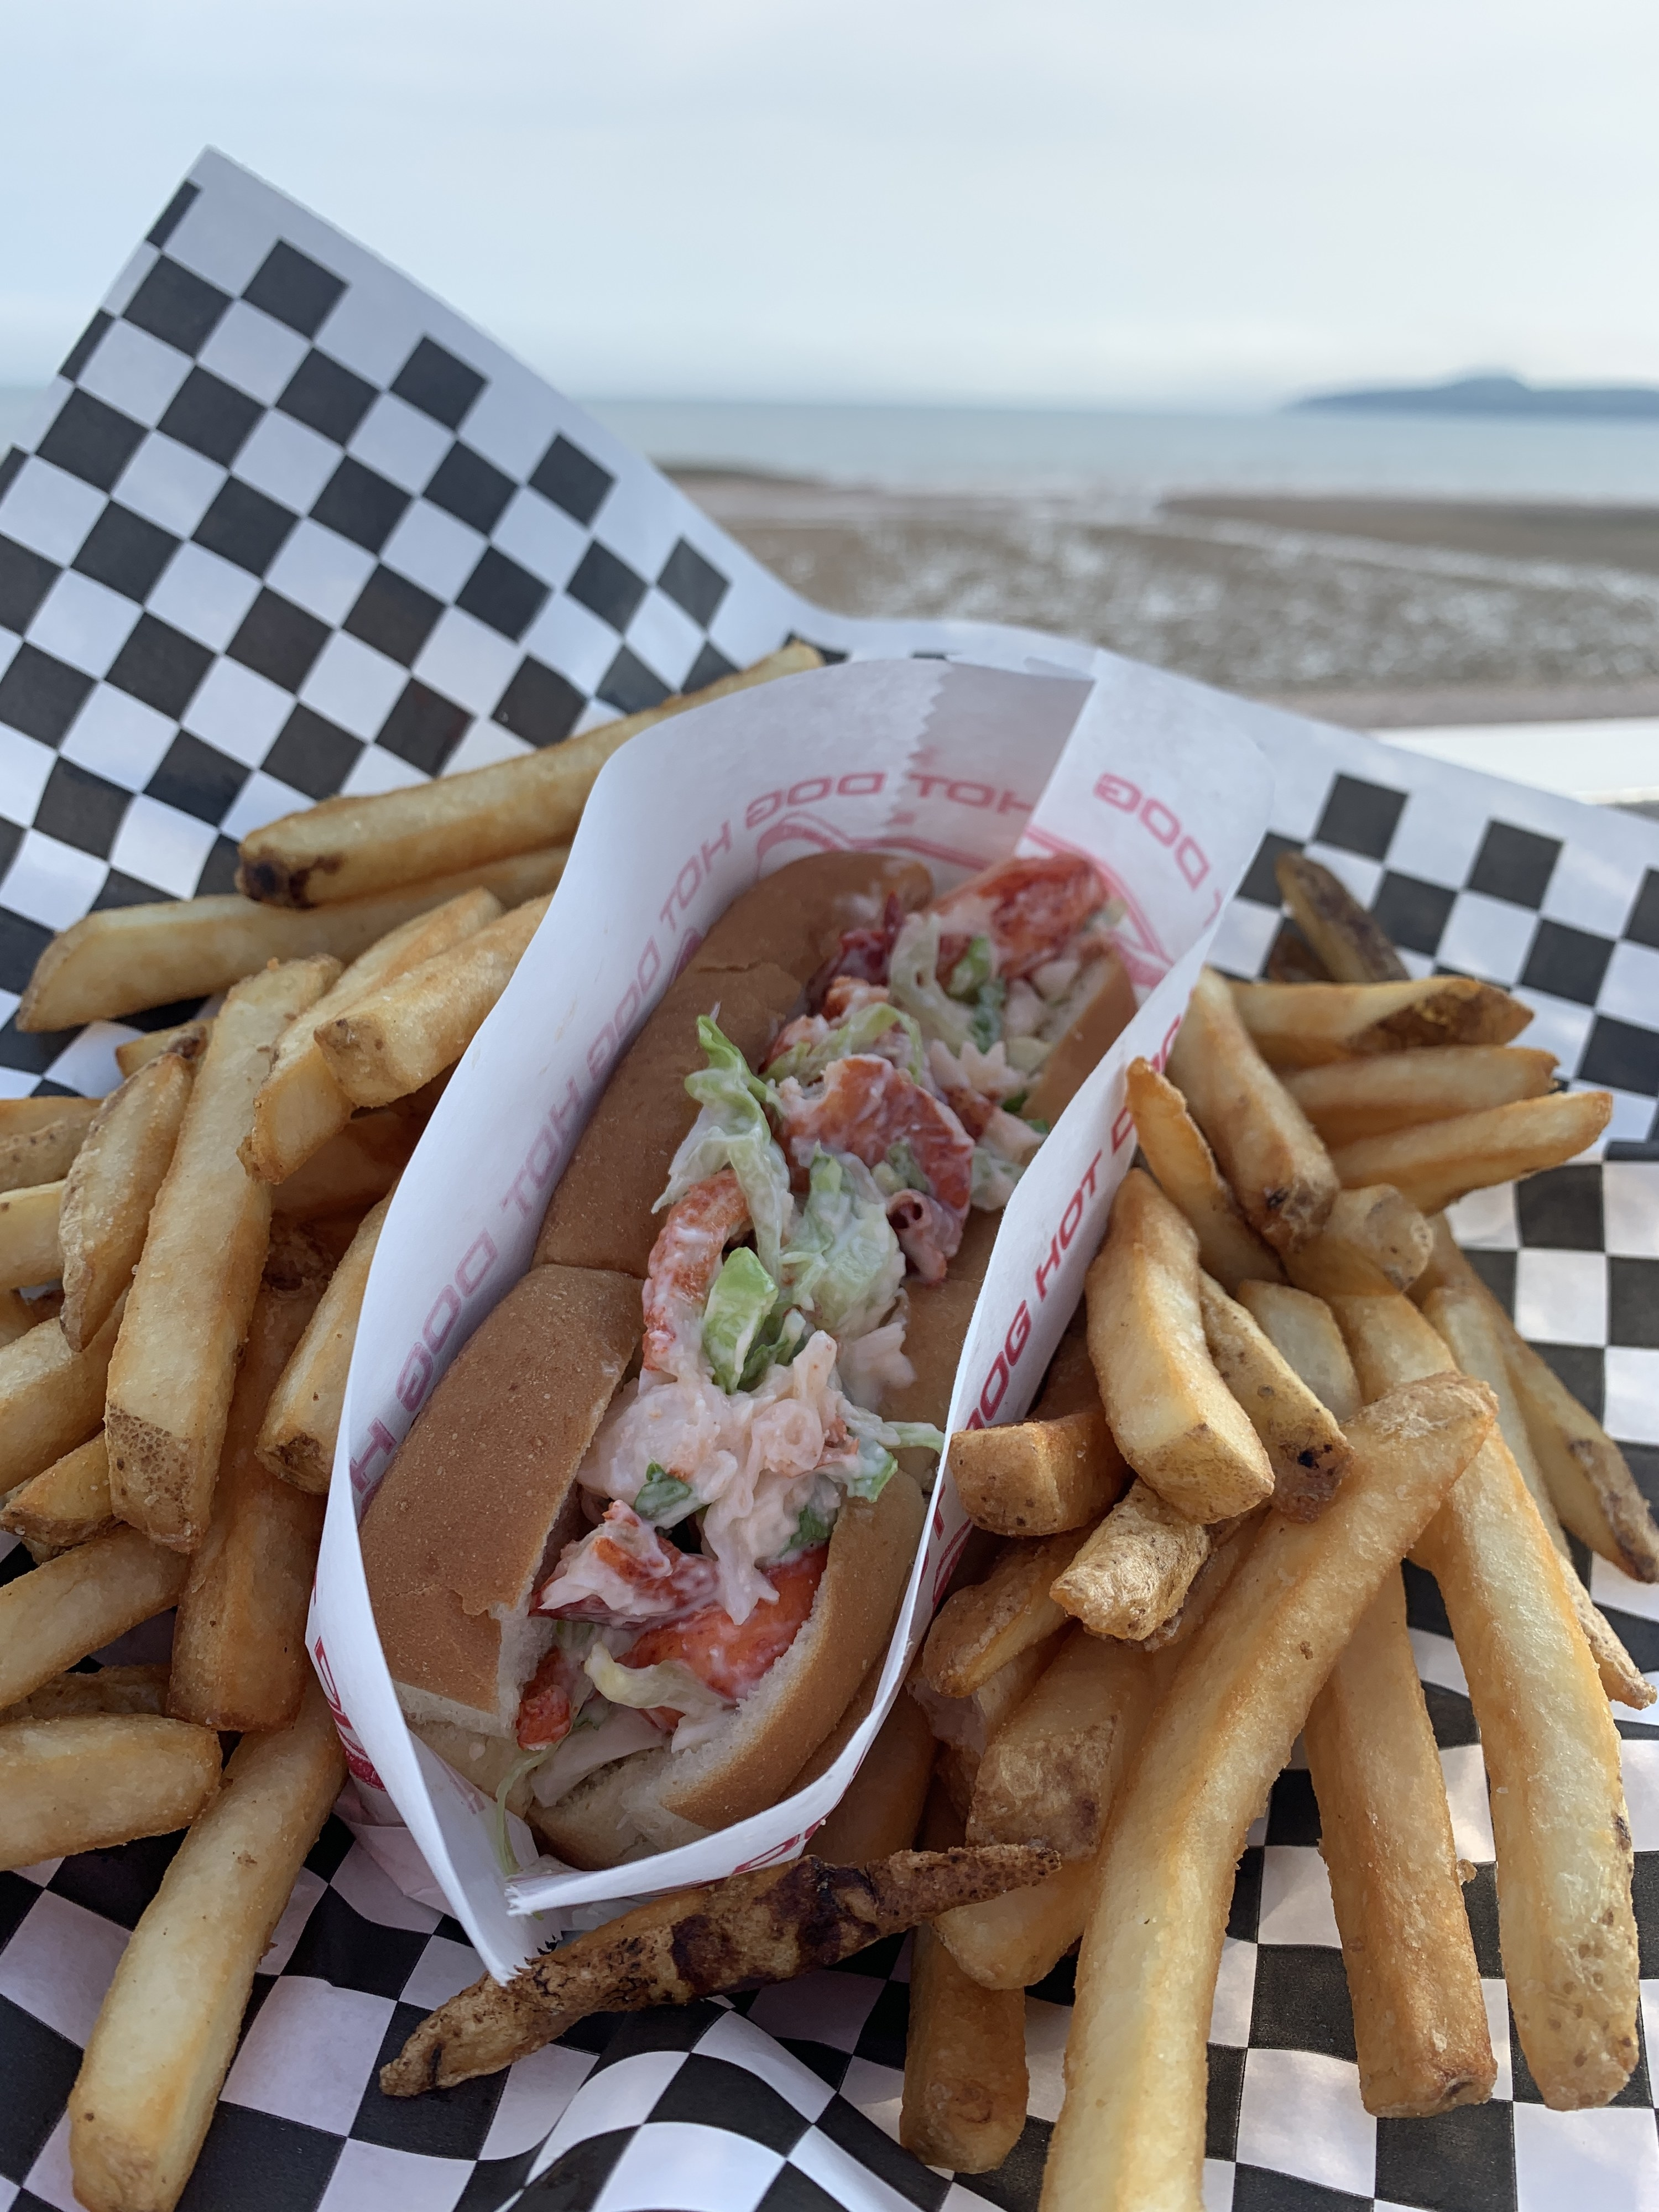 A photo of a lobster roll and fries